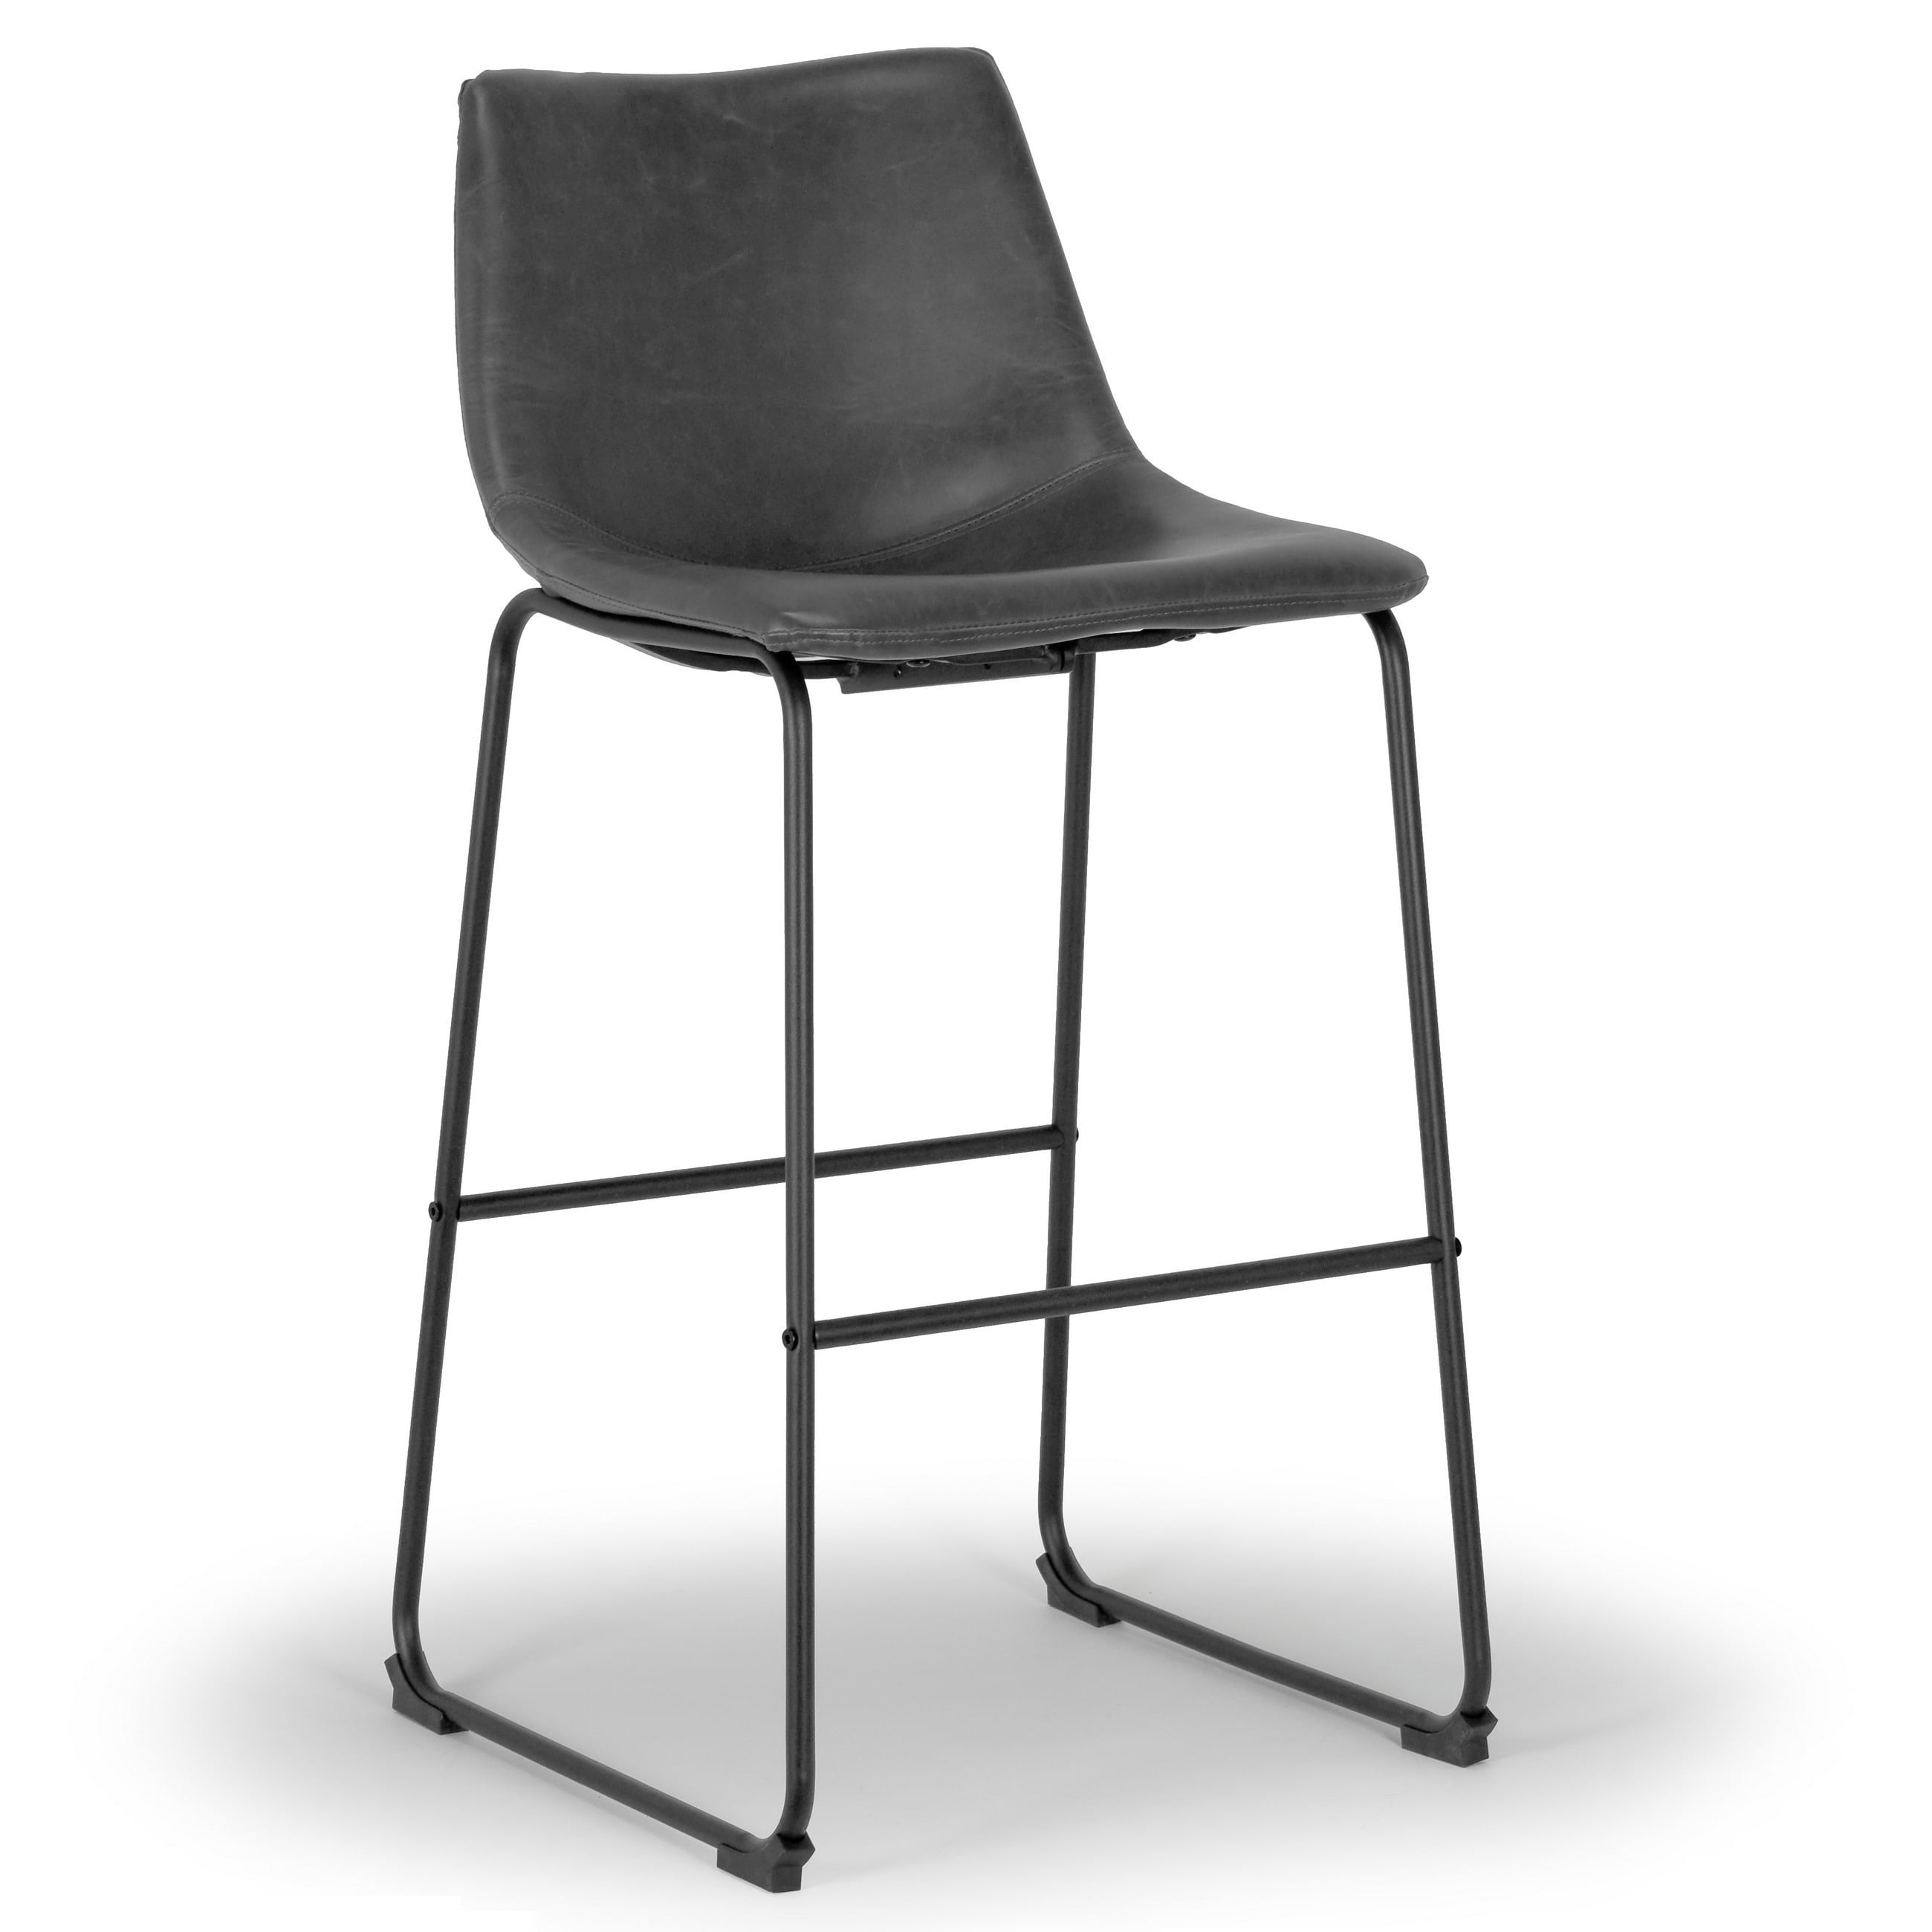 Shop Adan Faux Leather Iron Frame Bar Stool (Set of 2) - Free ...